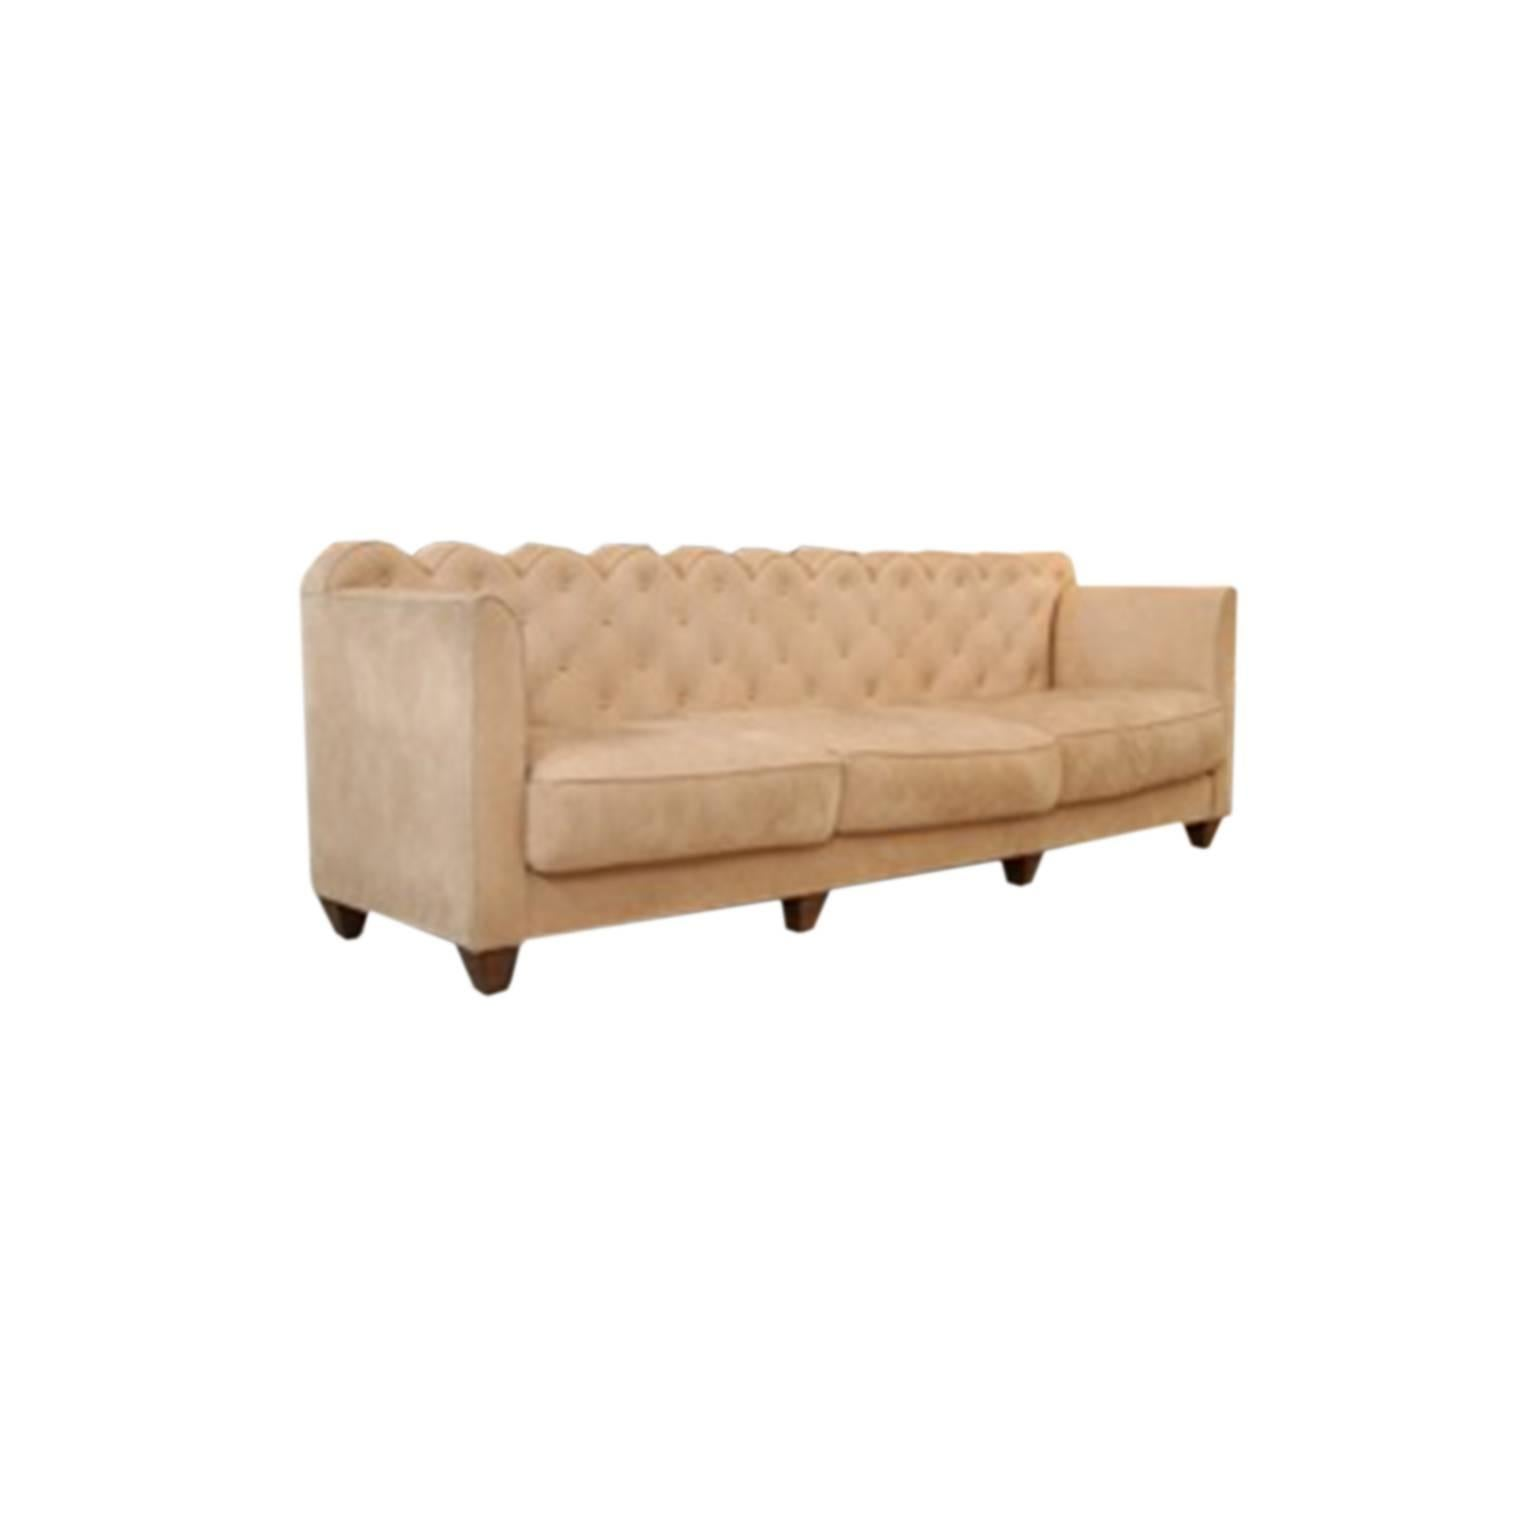 Portaluppi Had Created Two Of These Upholstered Sofas That Catches The Eye  With Its Arches Defining